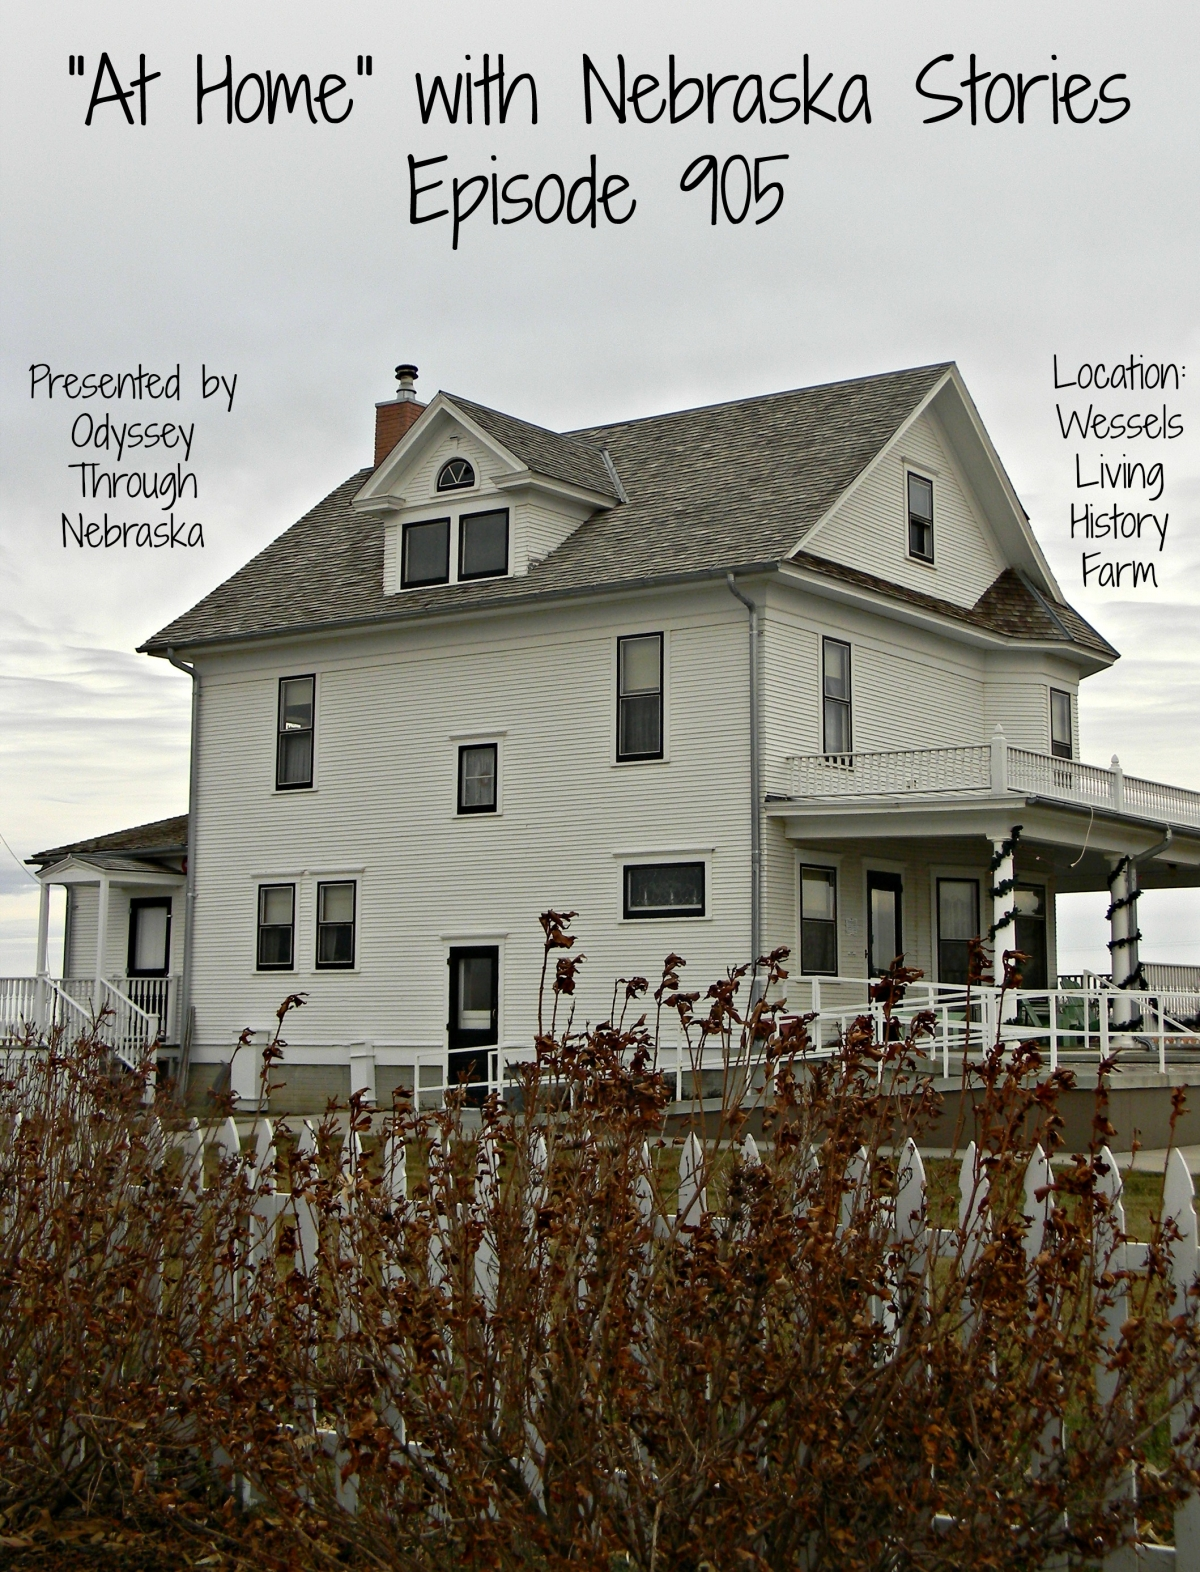 At Home with Nebraska Stories Episode 905